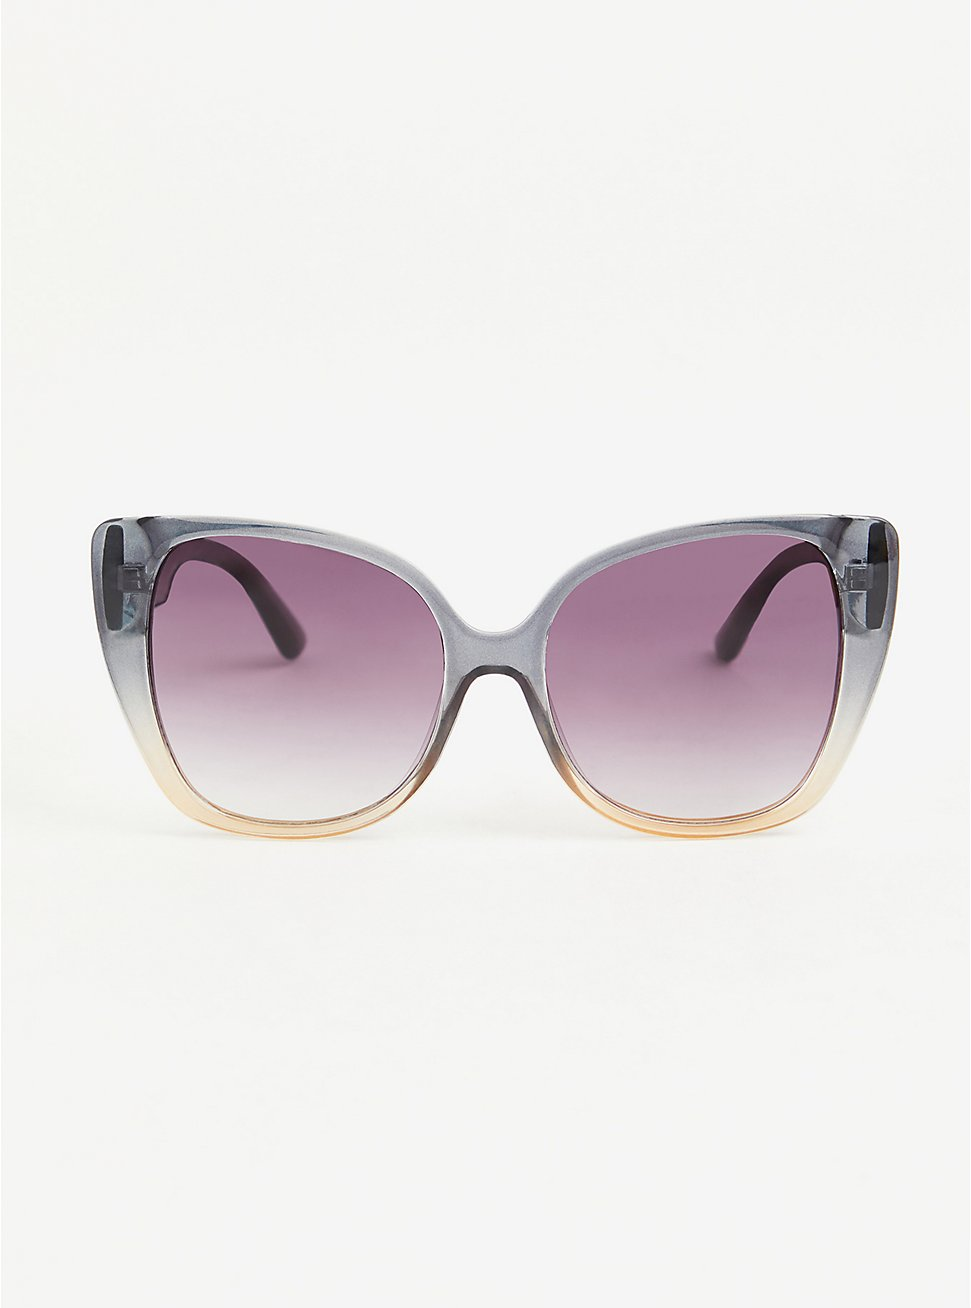 Grey and Blush Ombre Cat Eye Sunglasses, , hi-res